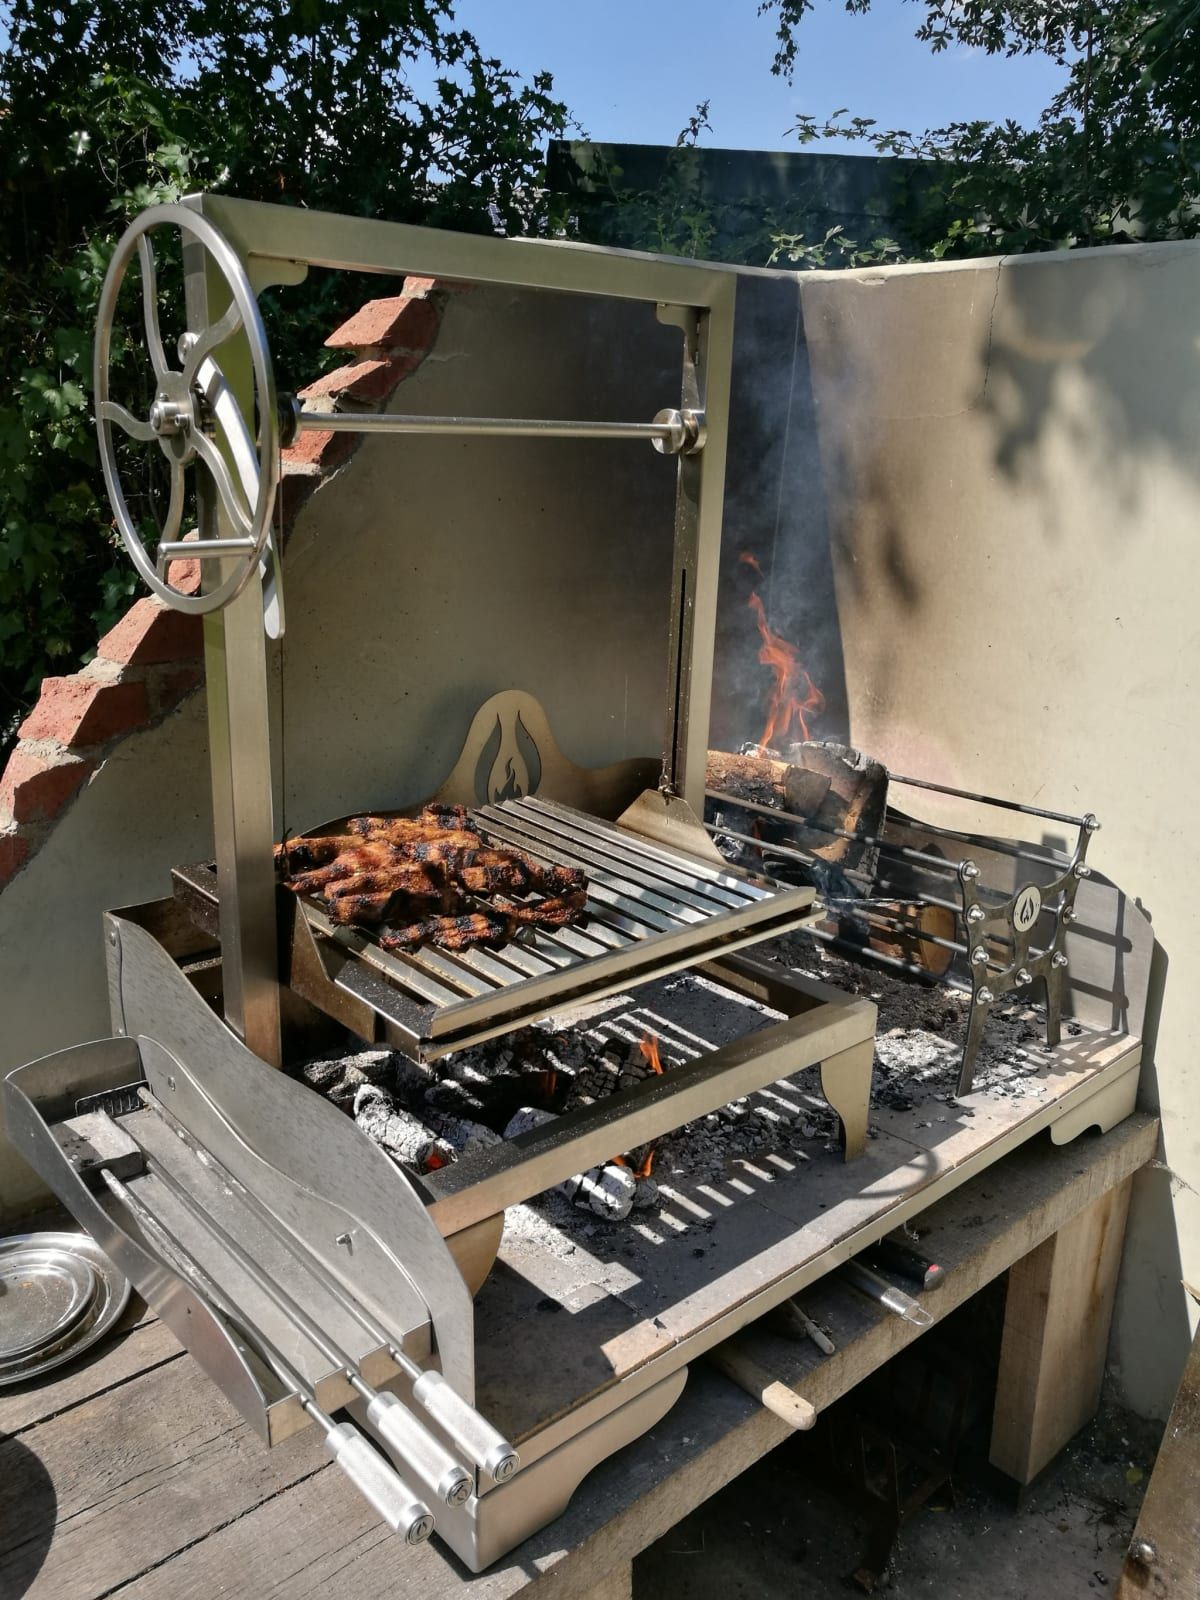 Asado Saltero Parilla Grill On Small Tabletop Fire Table With